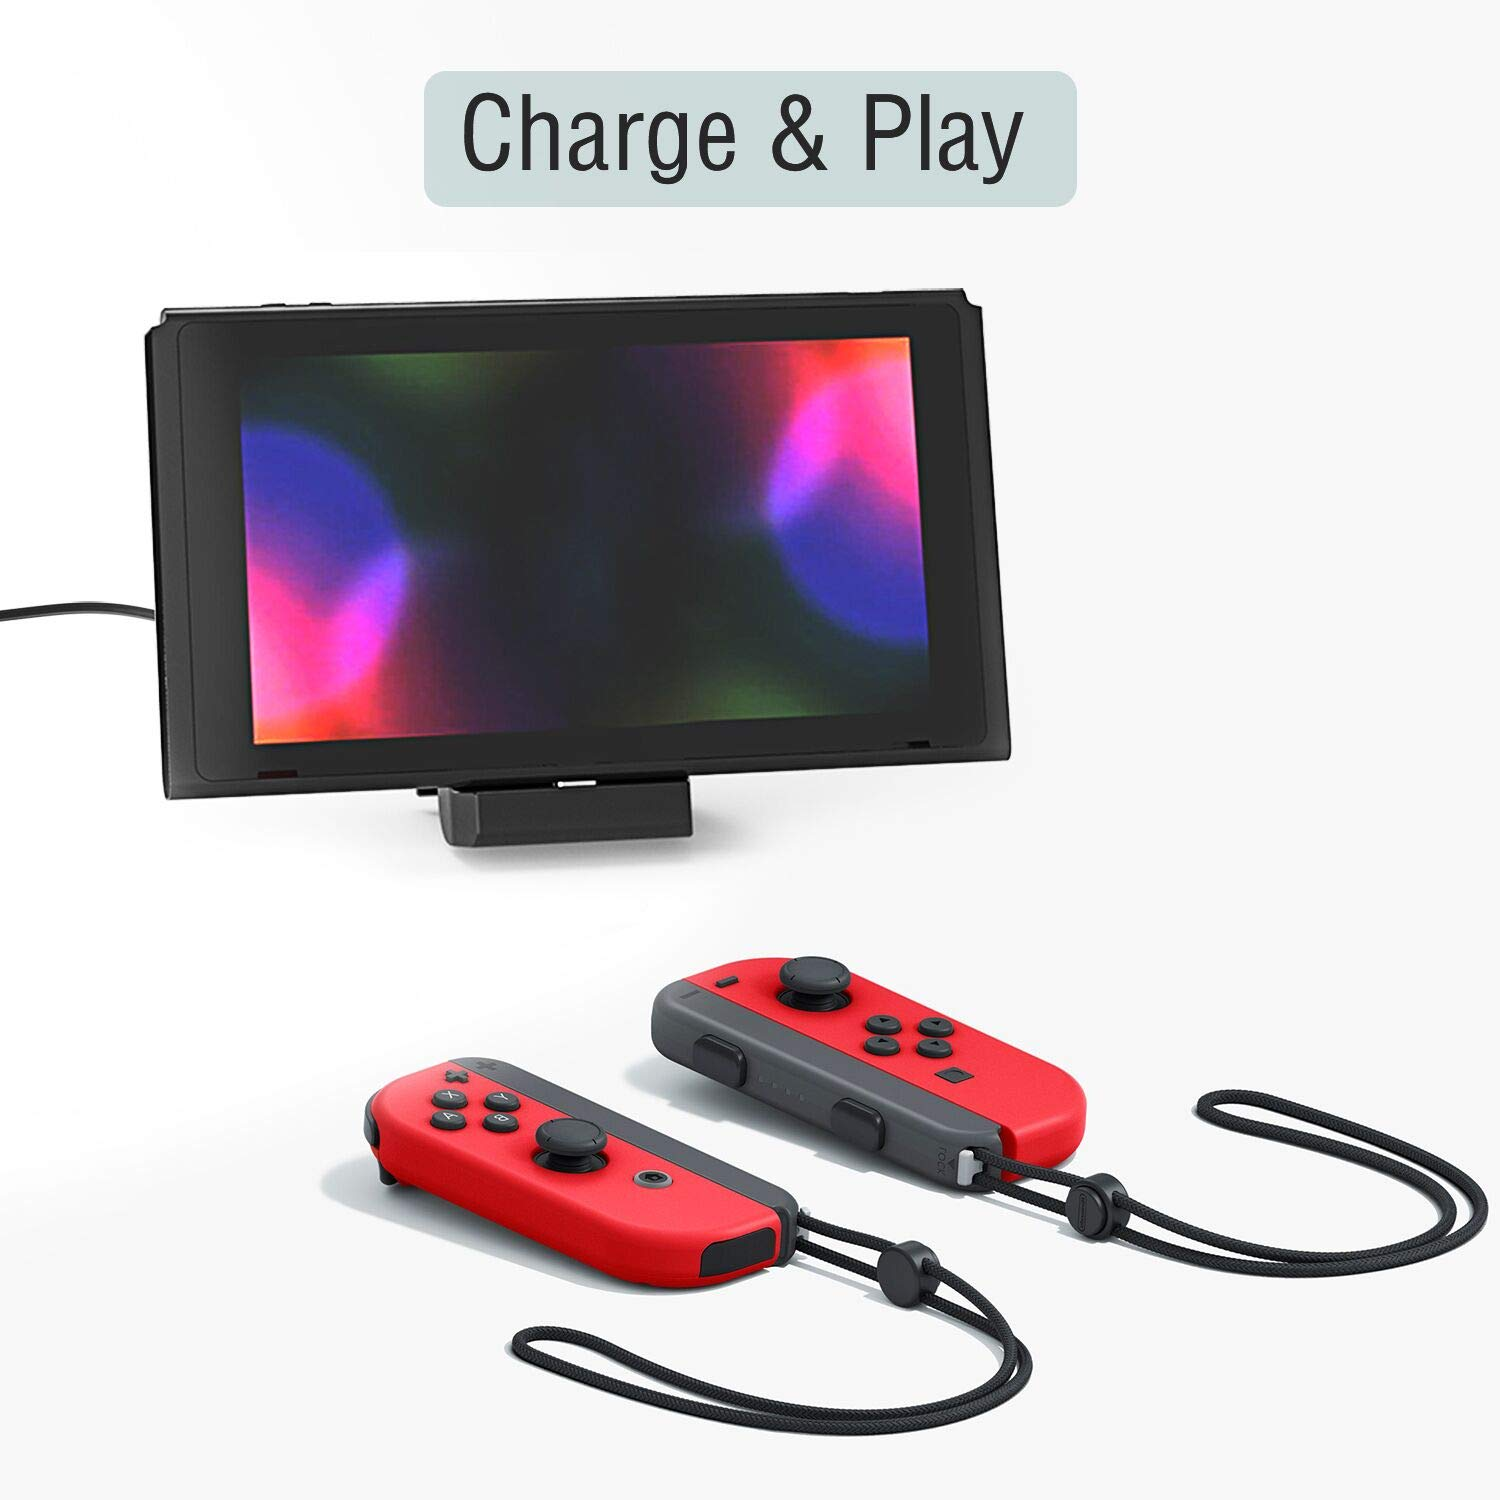 Adjustable Charging Stand for Nintendo Switch, Portable Multi-Angle Playstand Charging Dock for Nintendo Switch Console with Type C Charging Port